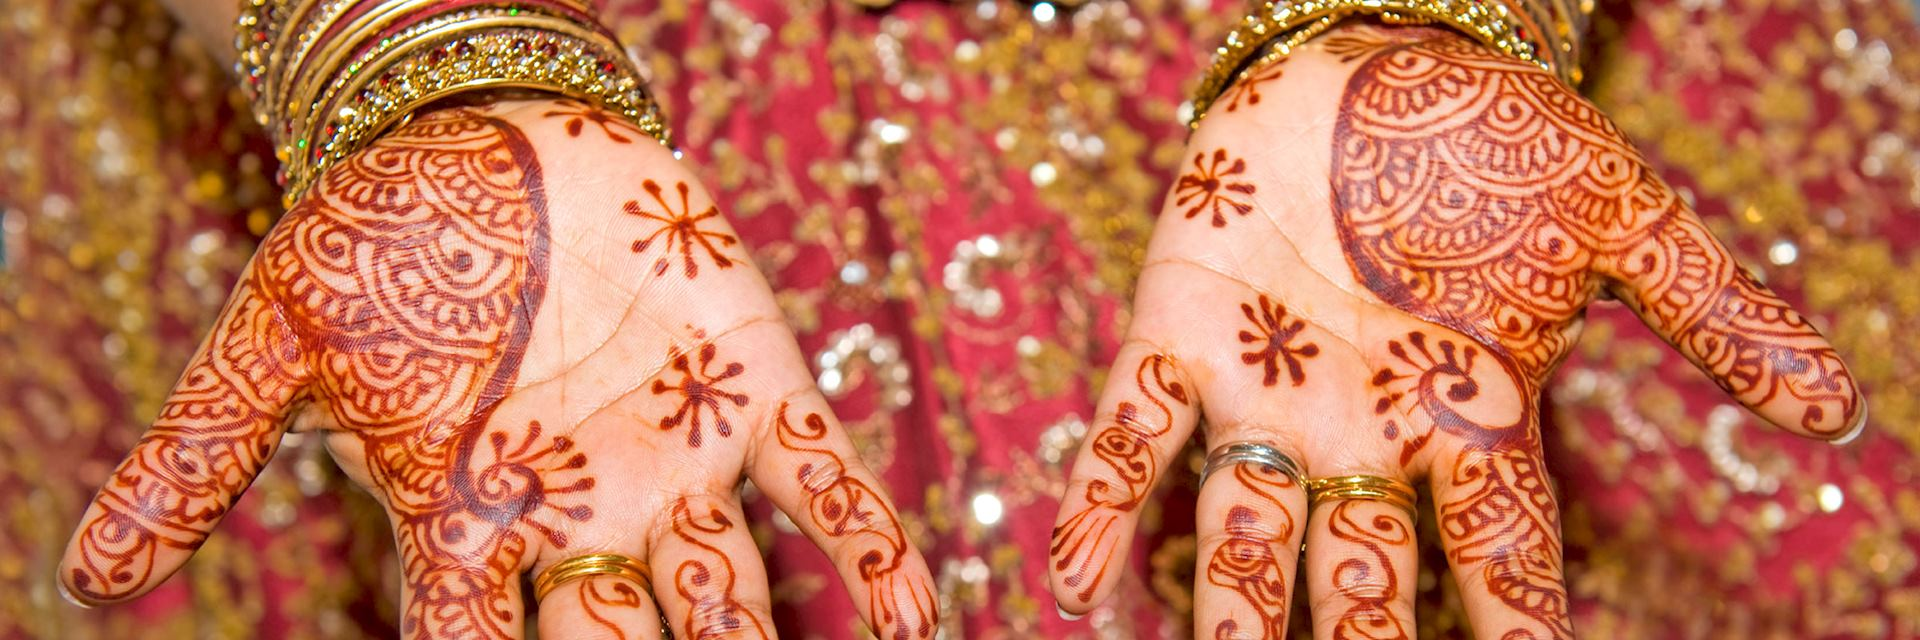 Indian lady's hands covered in henna